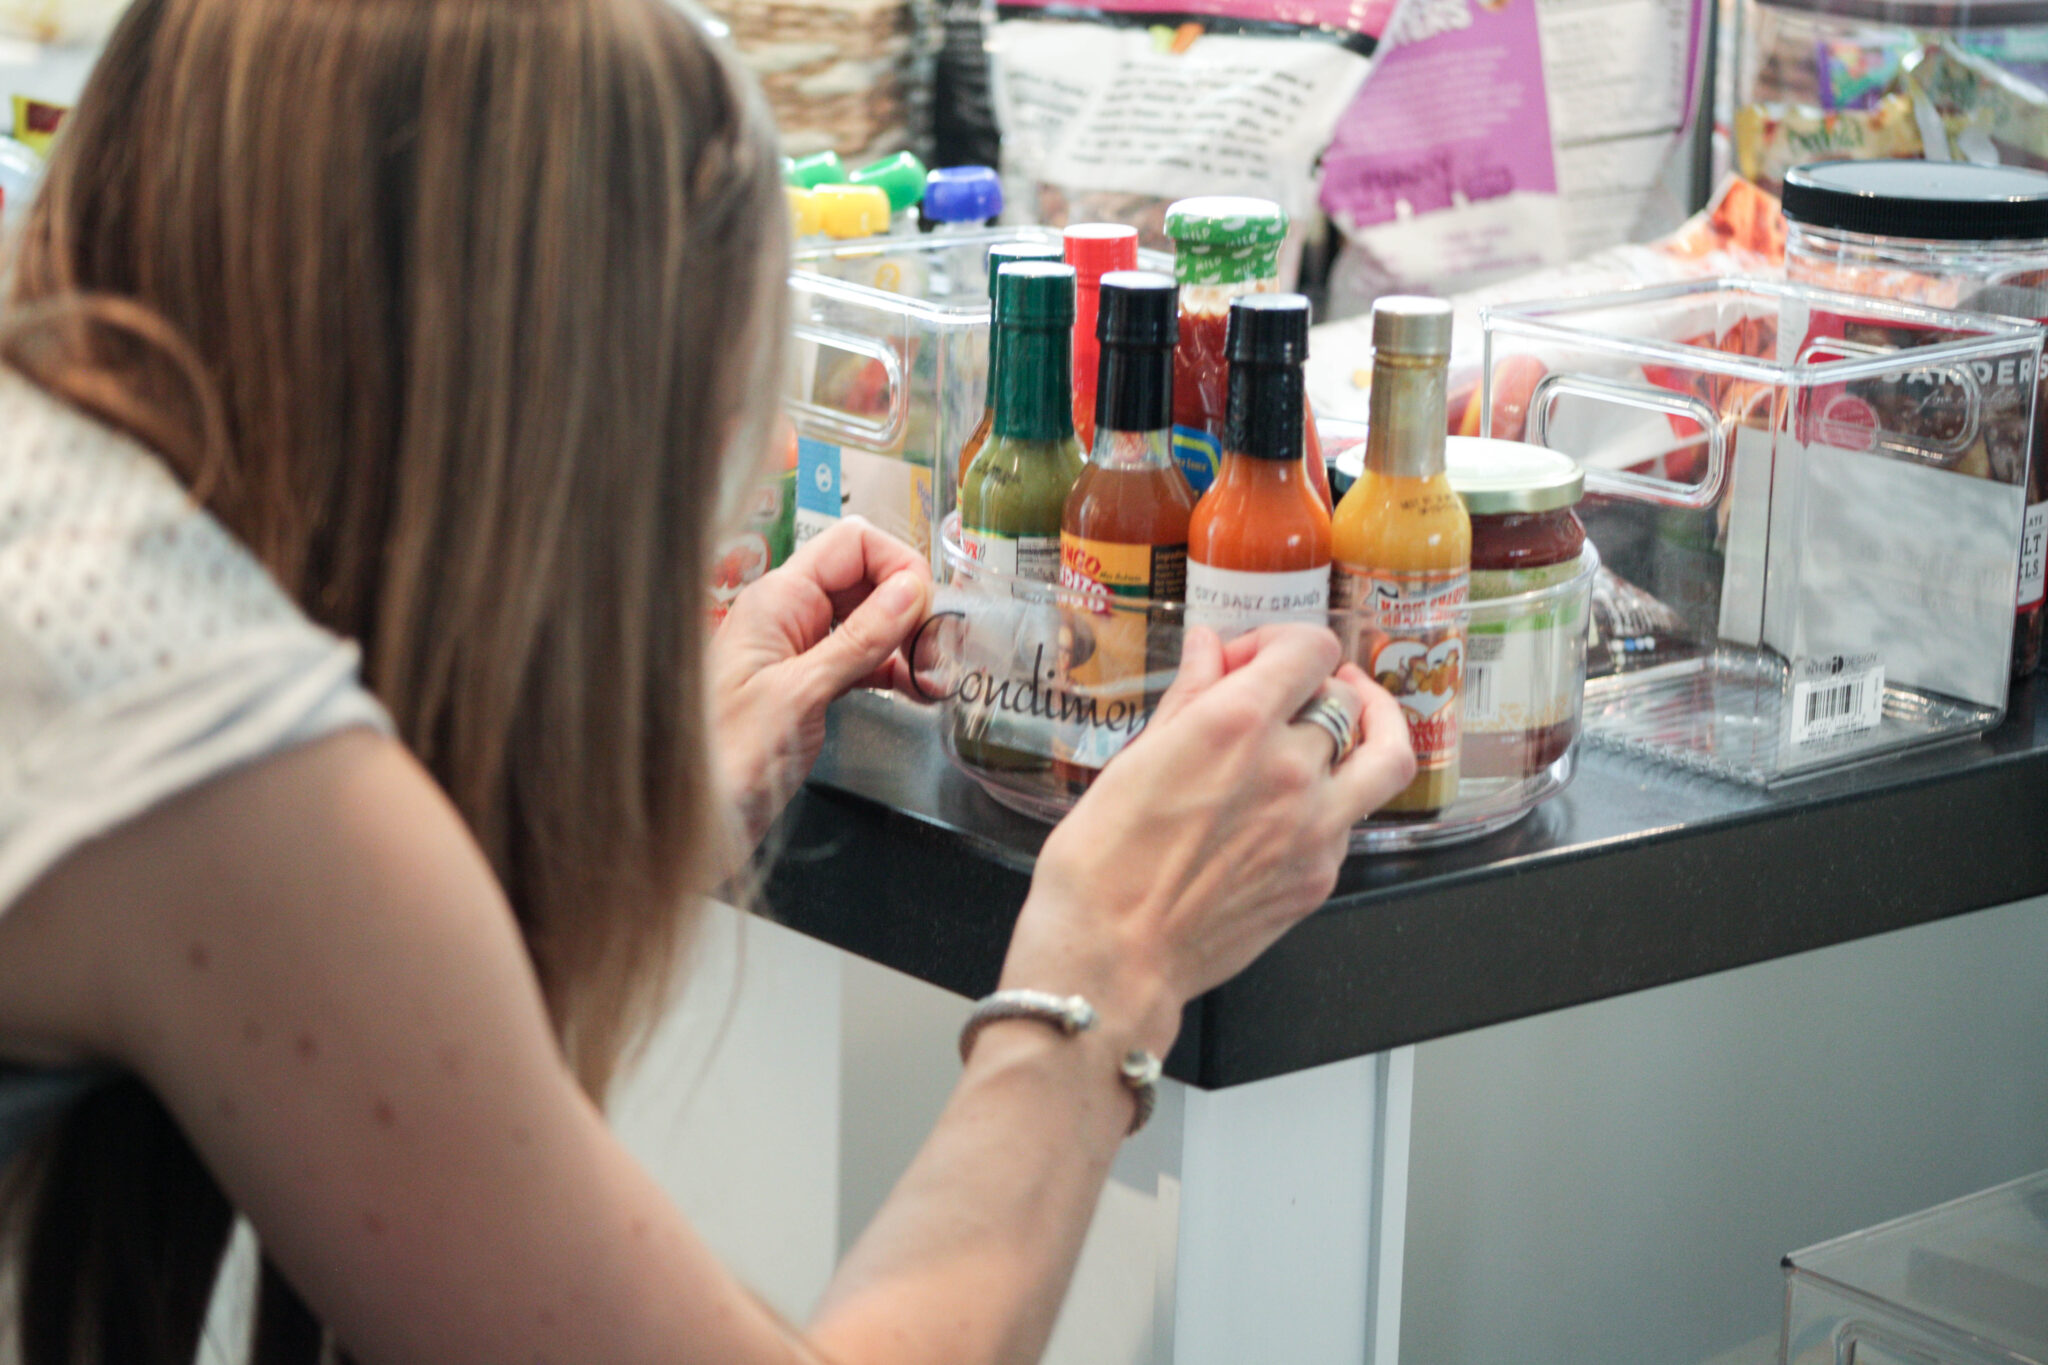 Using labels to organize kitchen pantry